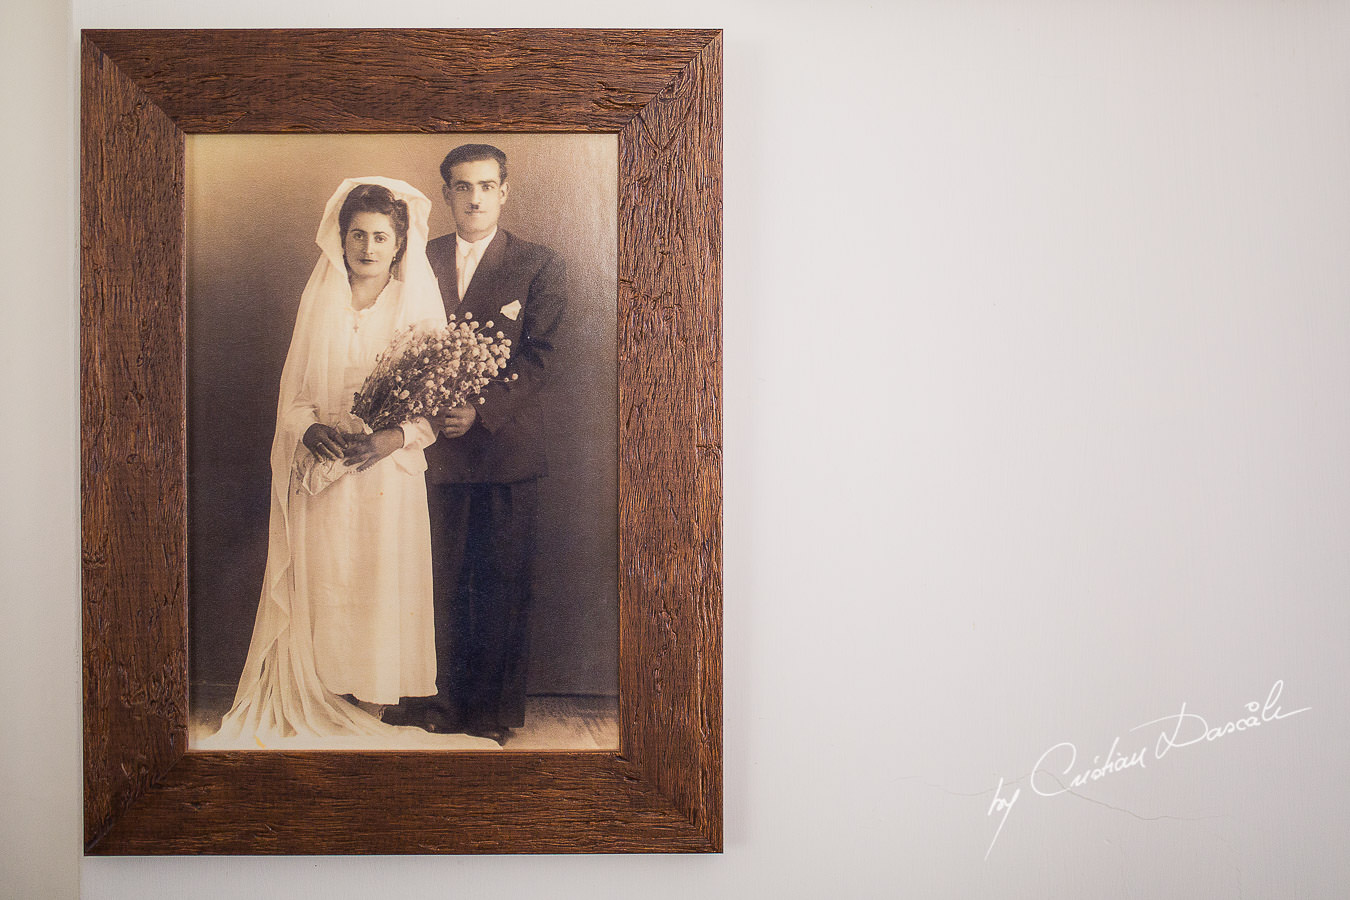 Vintage wedding photo frame, captured at a wedding in Cyprus by Photographer Cristian Dascalu.